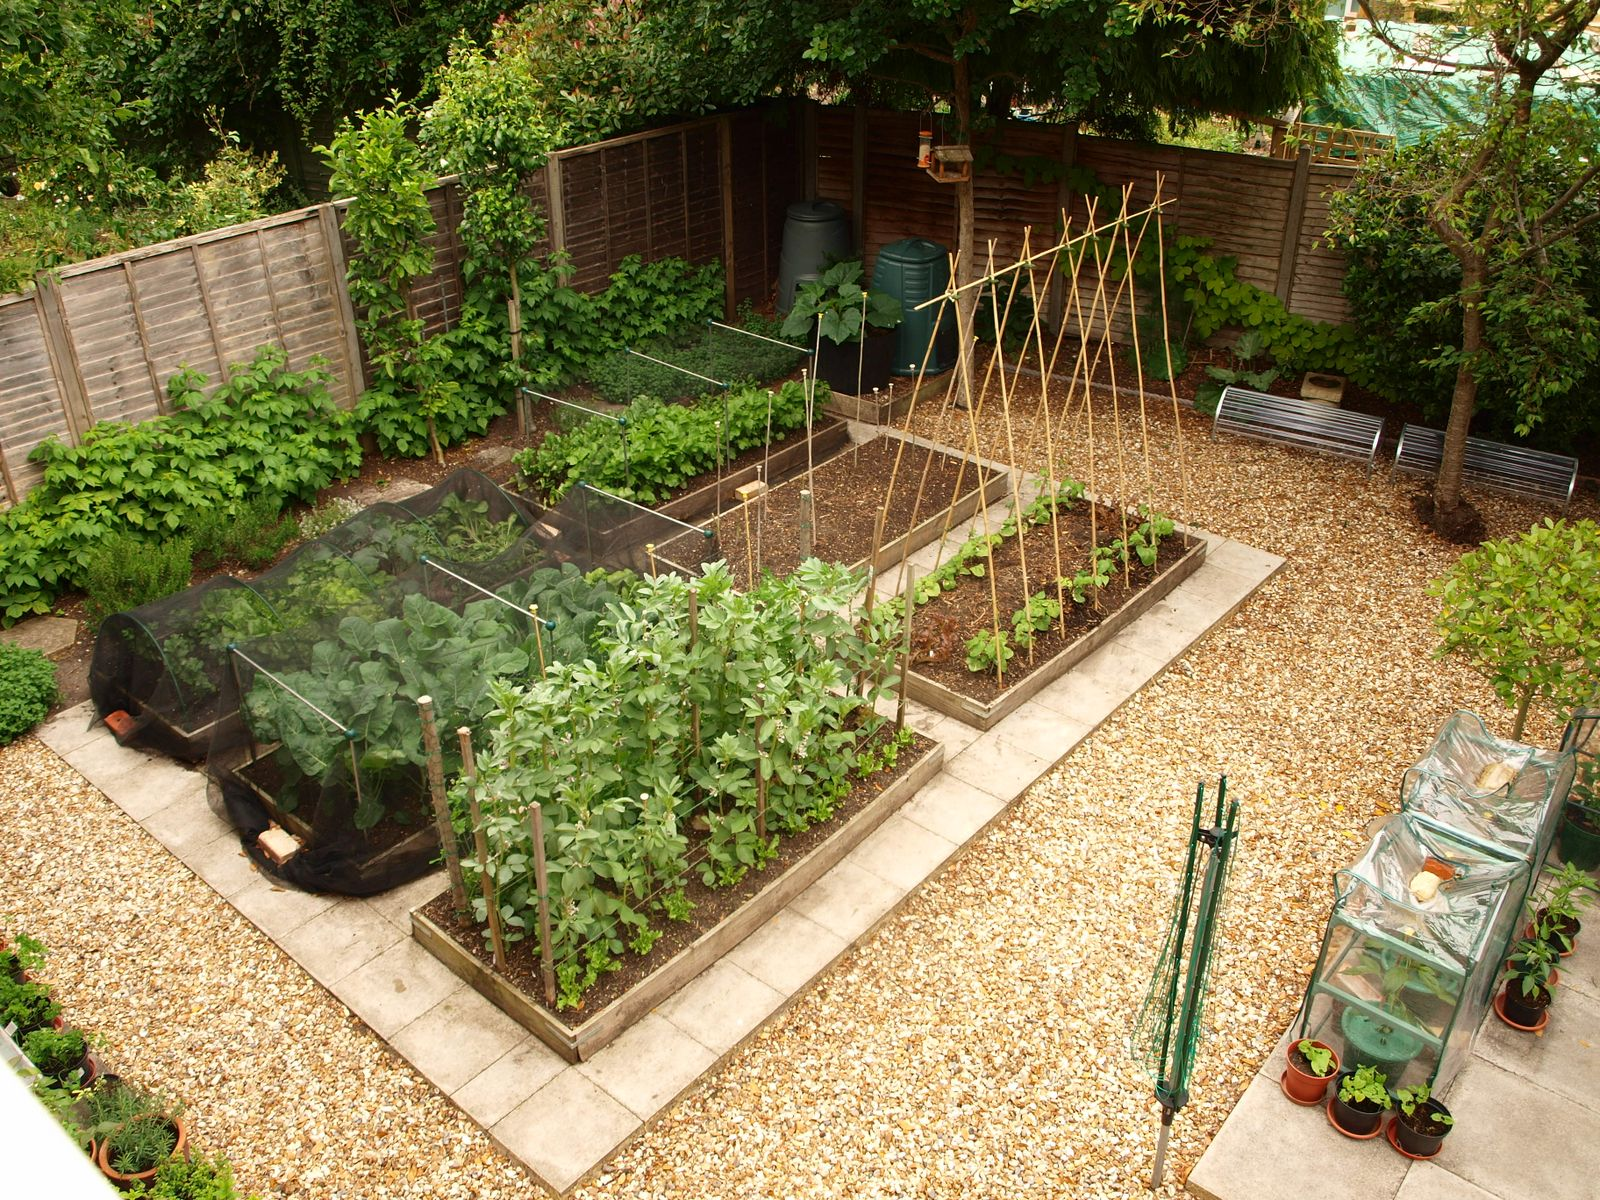 Mark 39 s veg plot allotment controversies for Veggie garden design